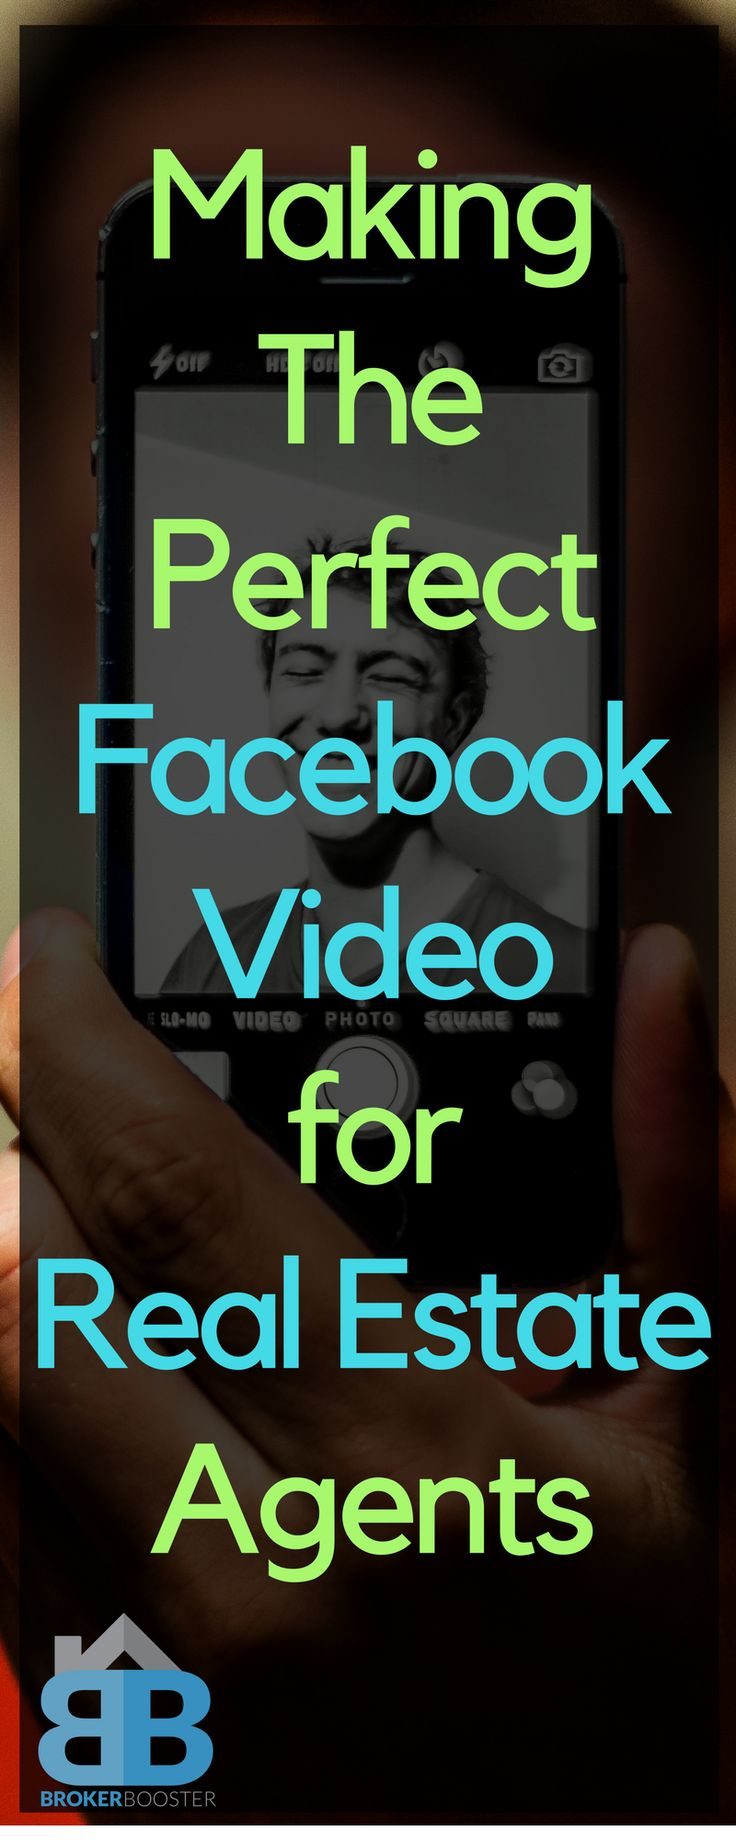 Making The Perfect Facebook Video for Real Estate Agents - #realestate #realtor #broker #realestatebroker #realestateagent #realestatemarketing #realestatevideo #facebookvideos #facebook #realestateblog